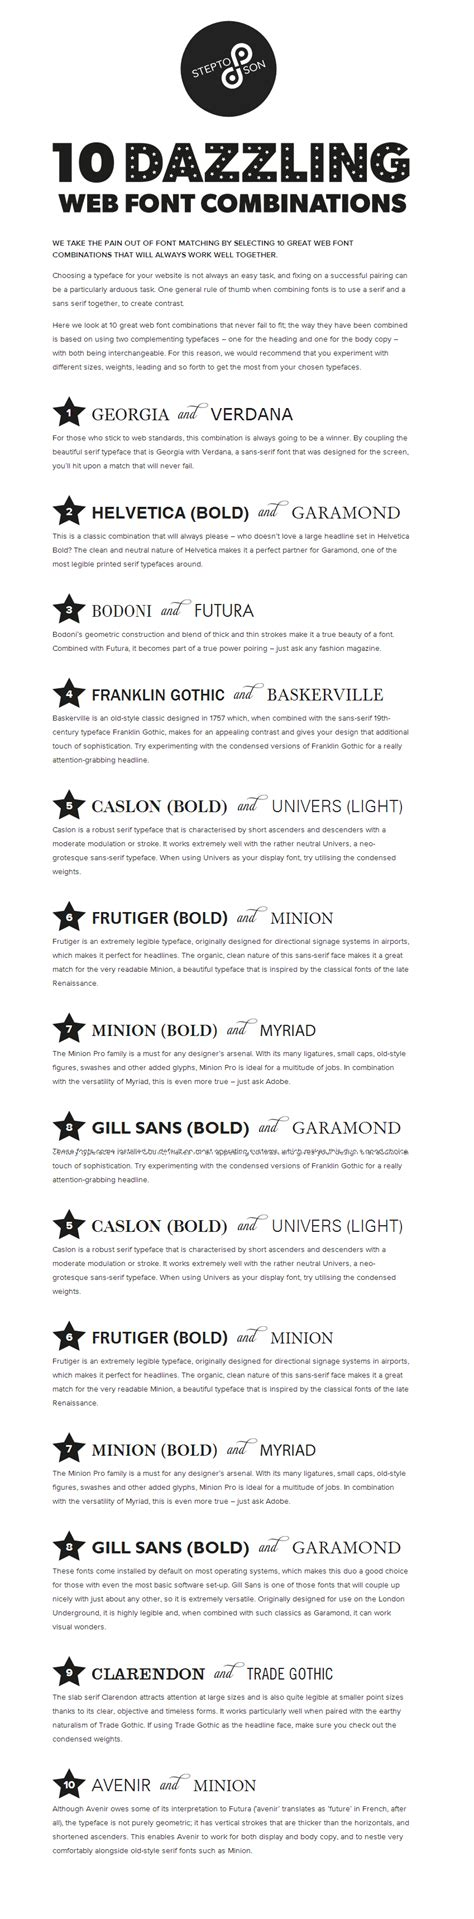 10 great web font combinations stepto son graphic design and website development agency